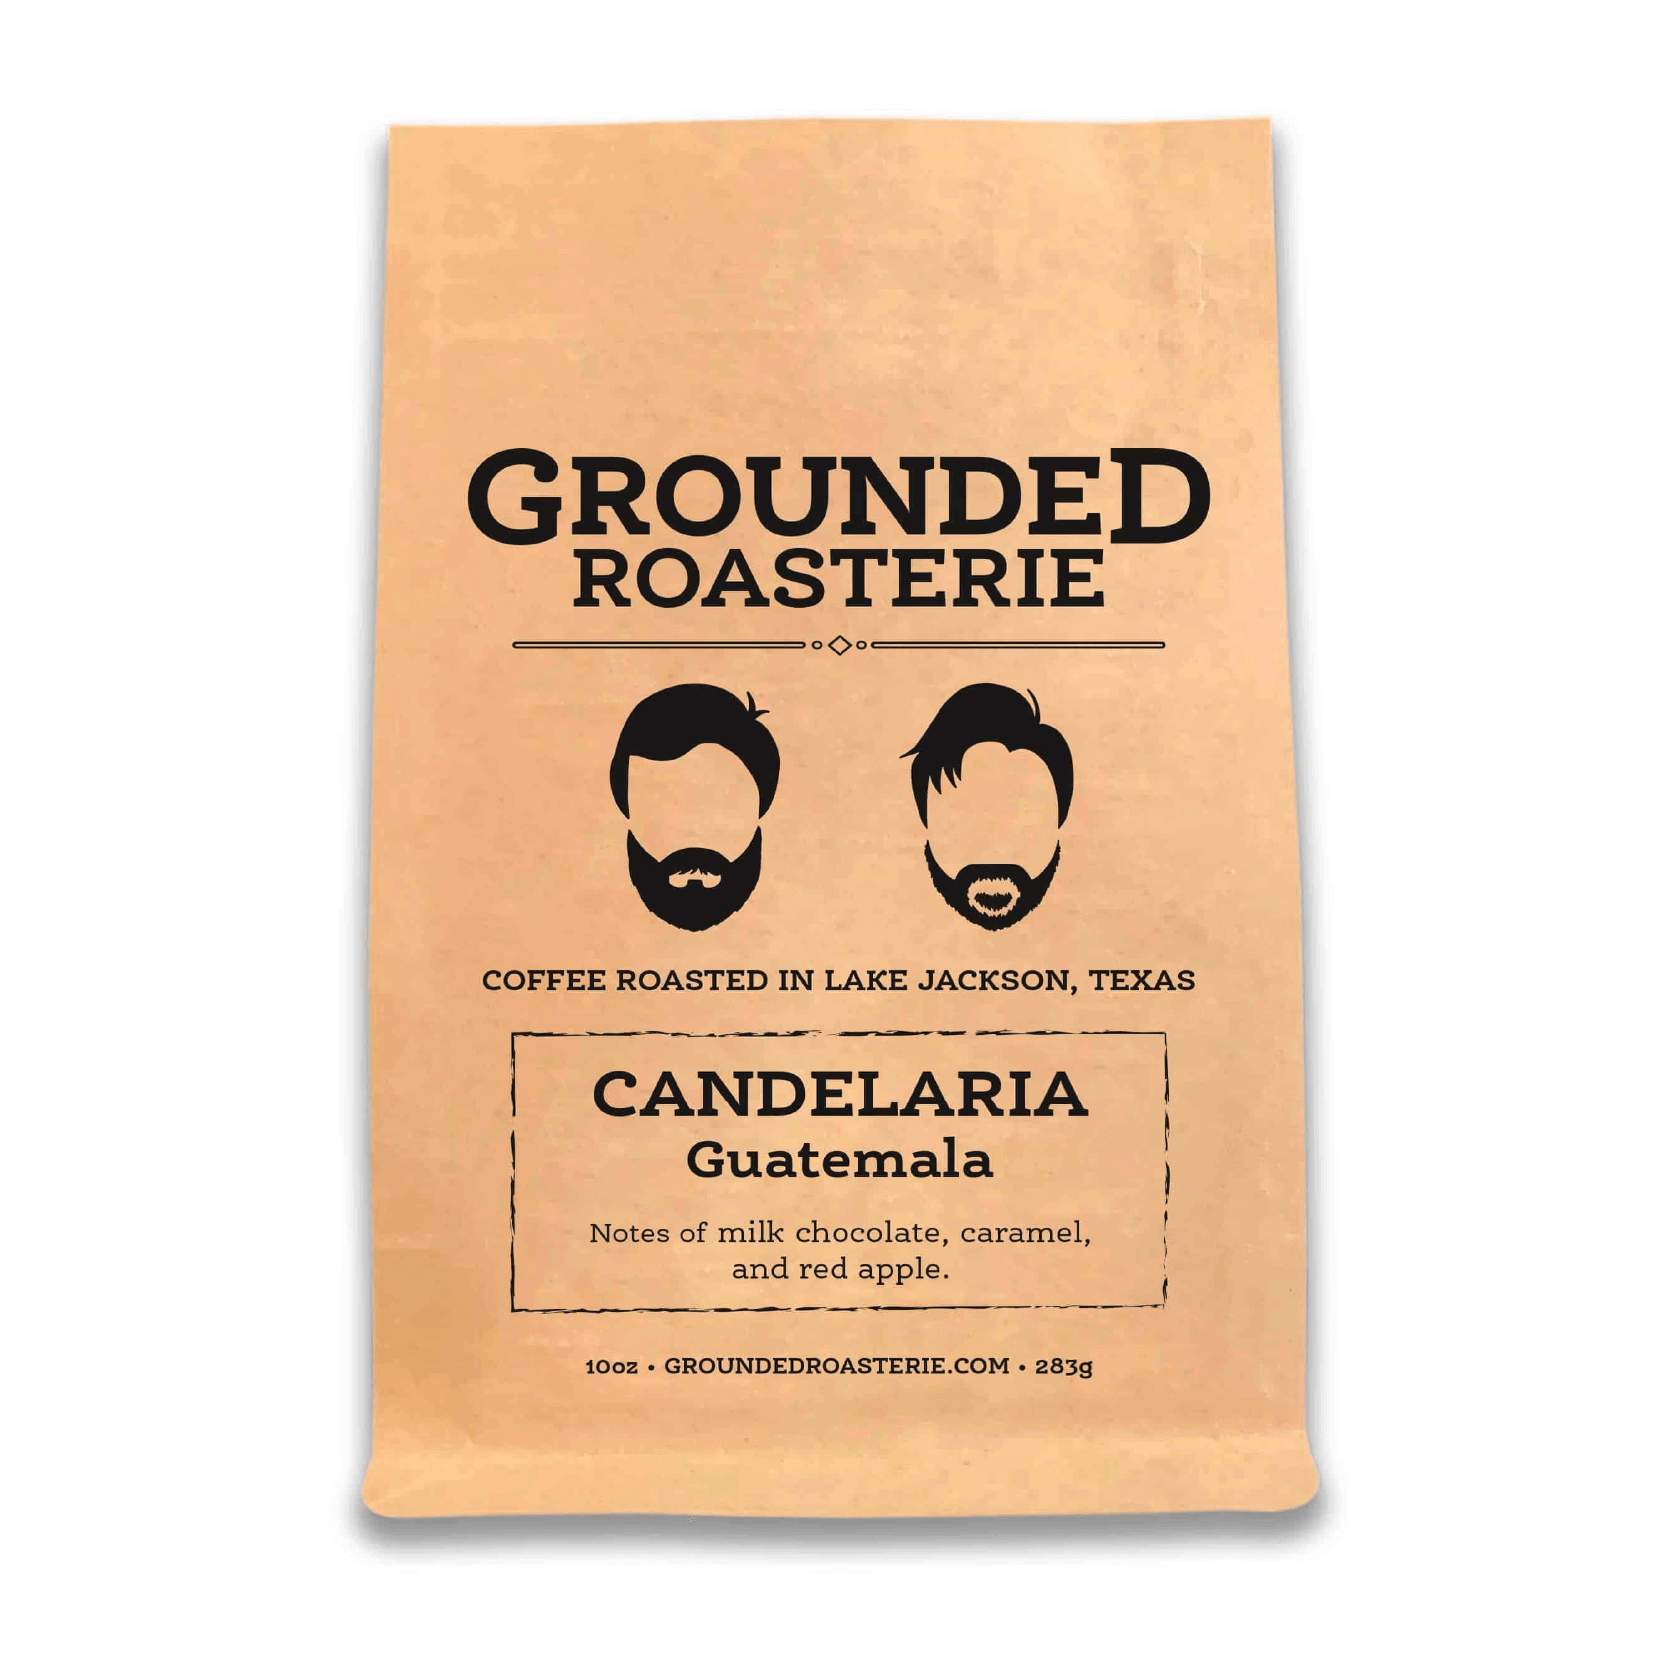 Guatemala Candalaria from Grounded Roasterie